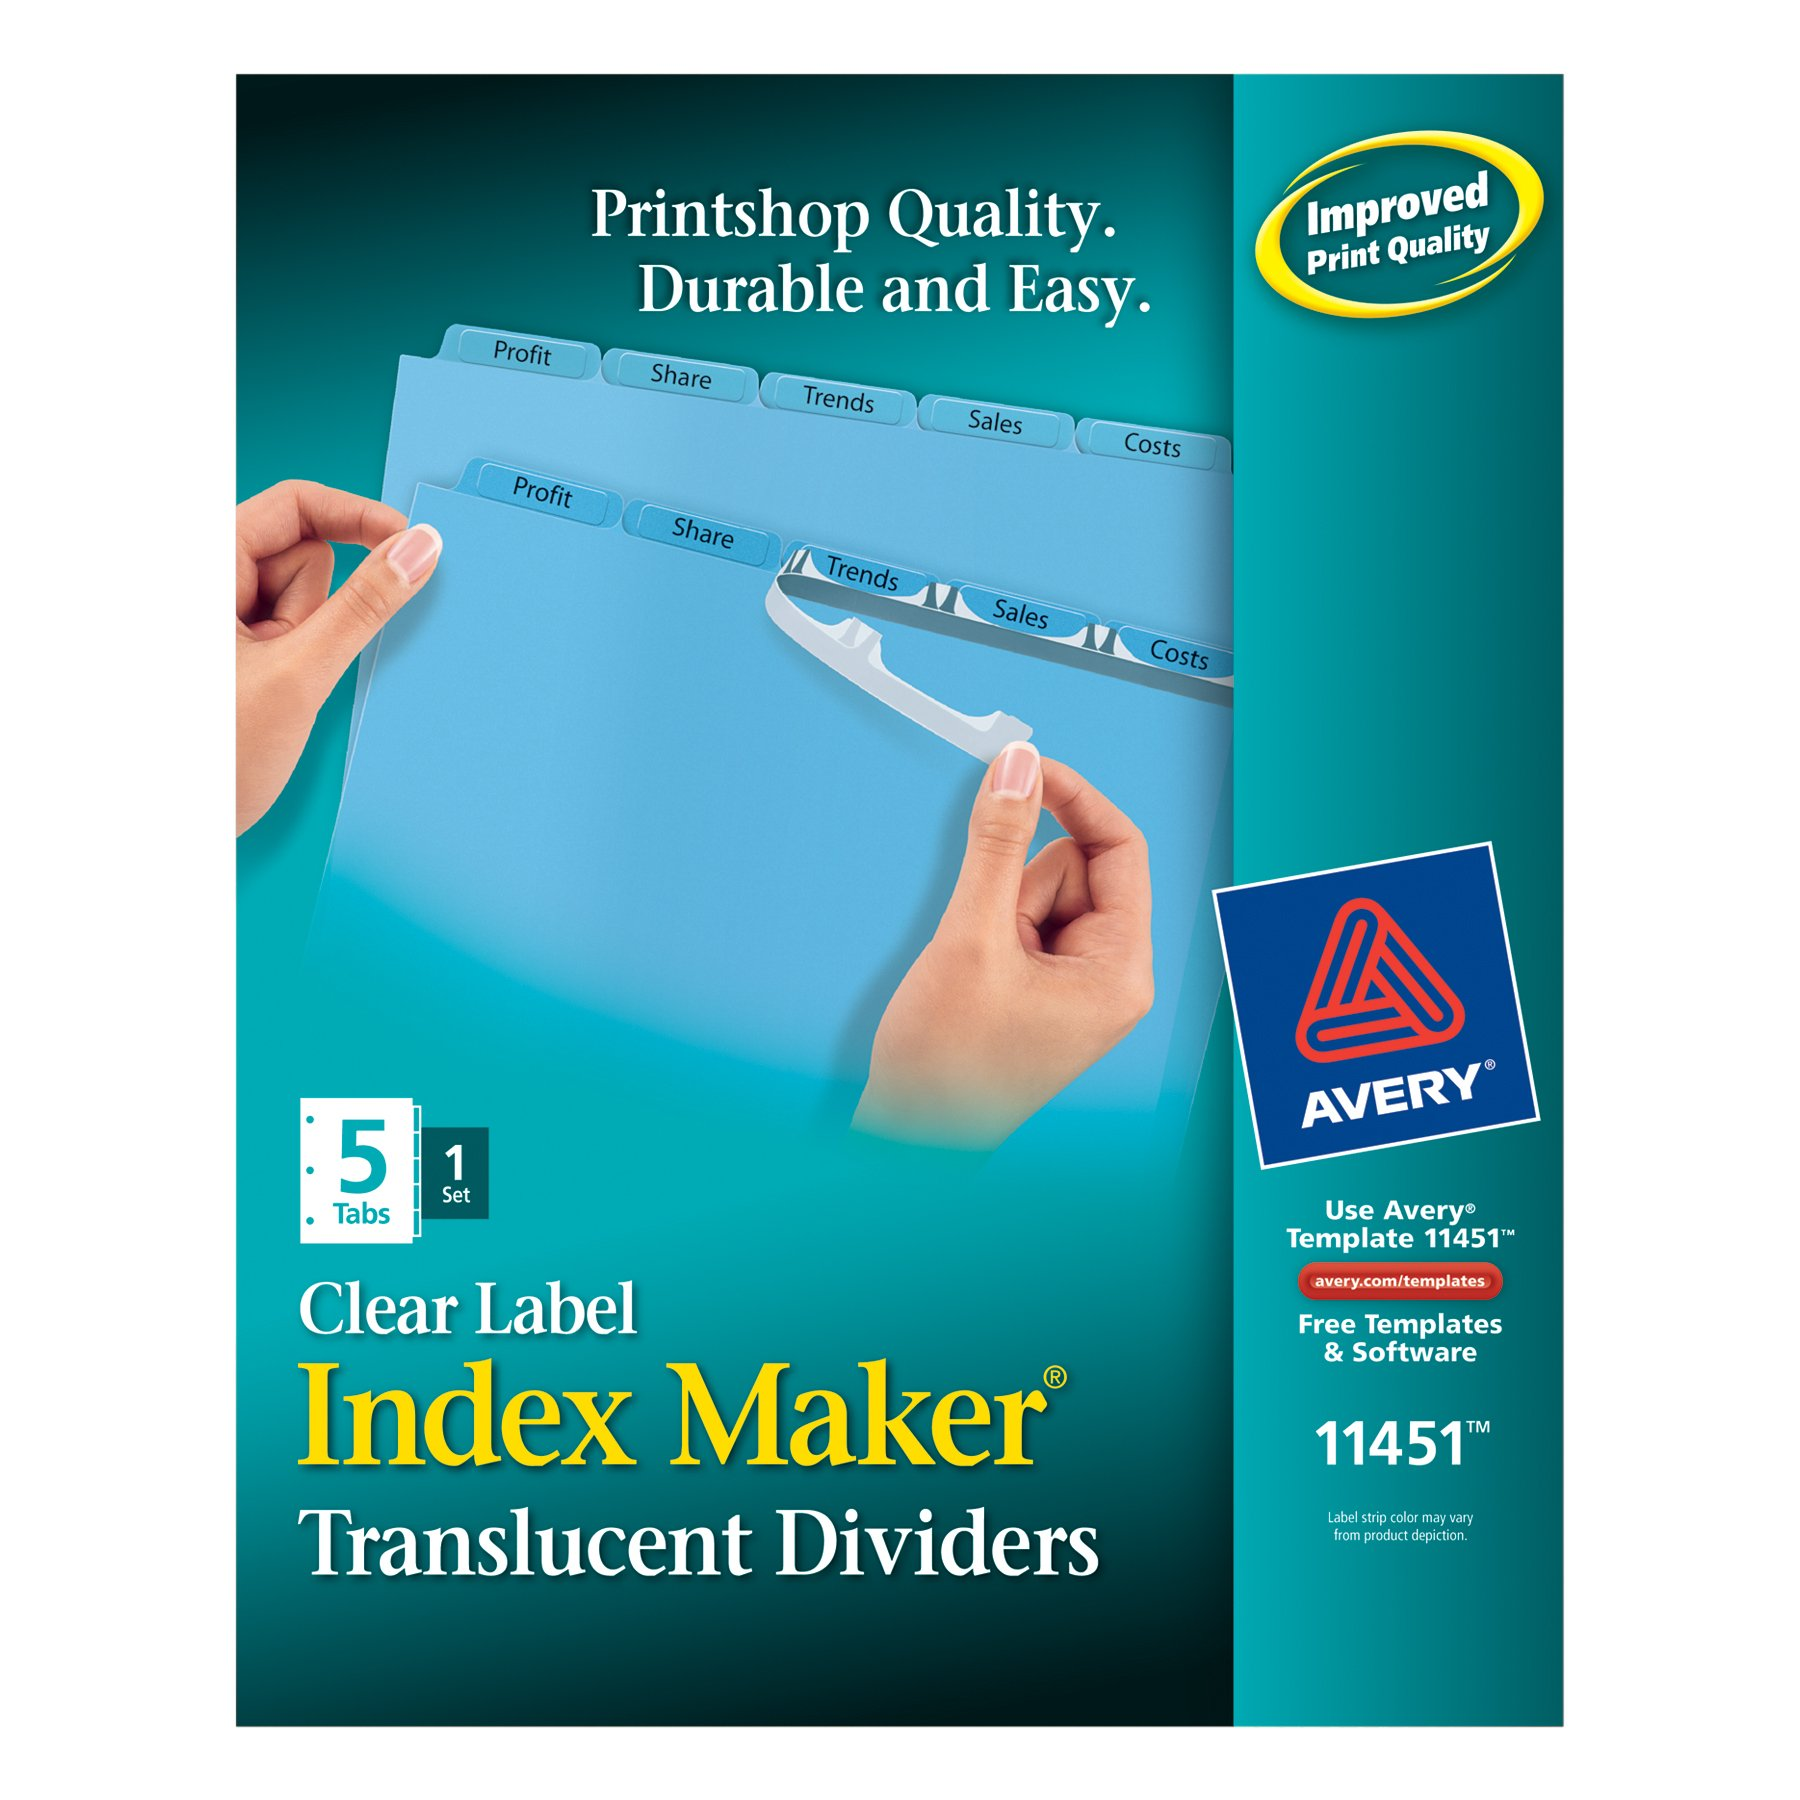 Avery Index Maker Translucent Dividers with Clear Labels, 5-Tab, Blue, 1 Set (11451)